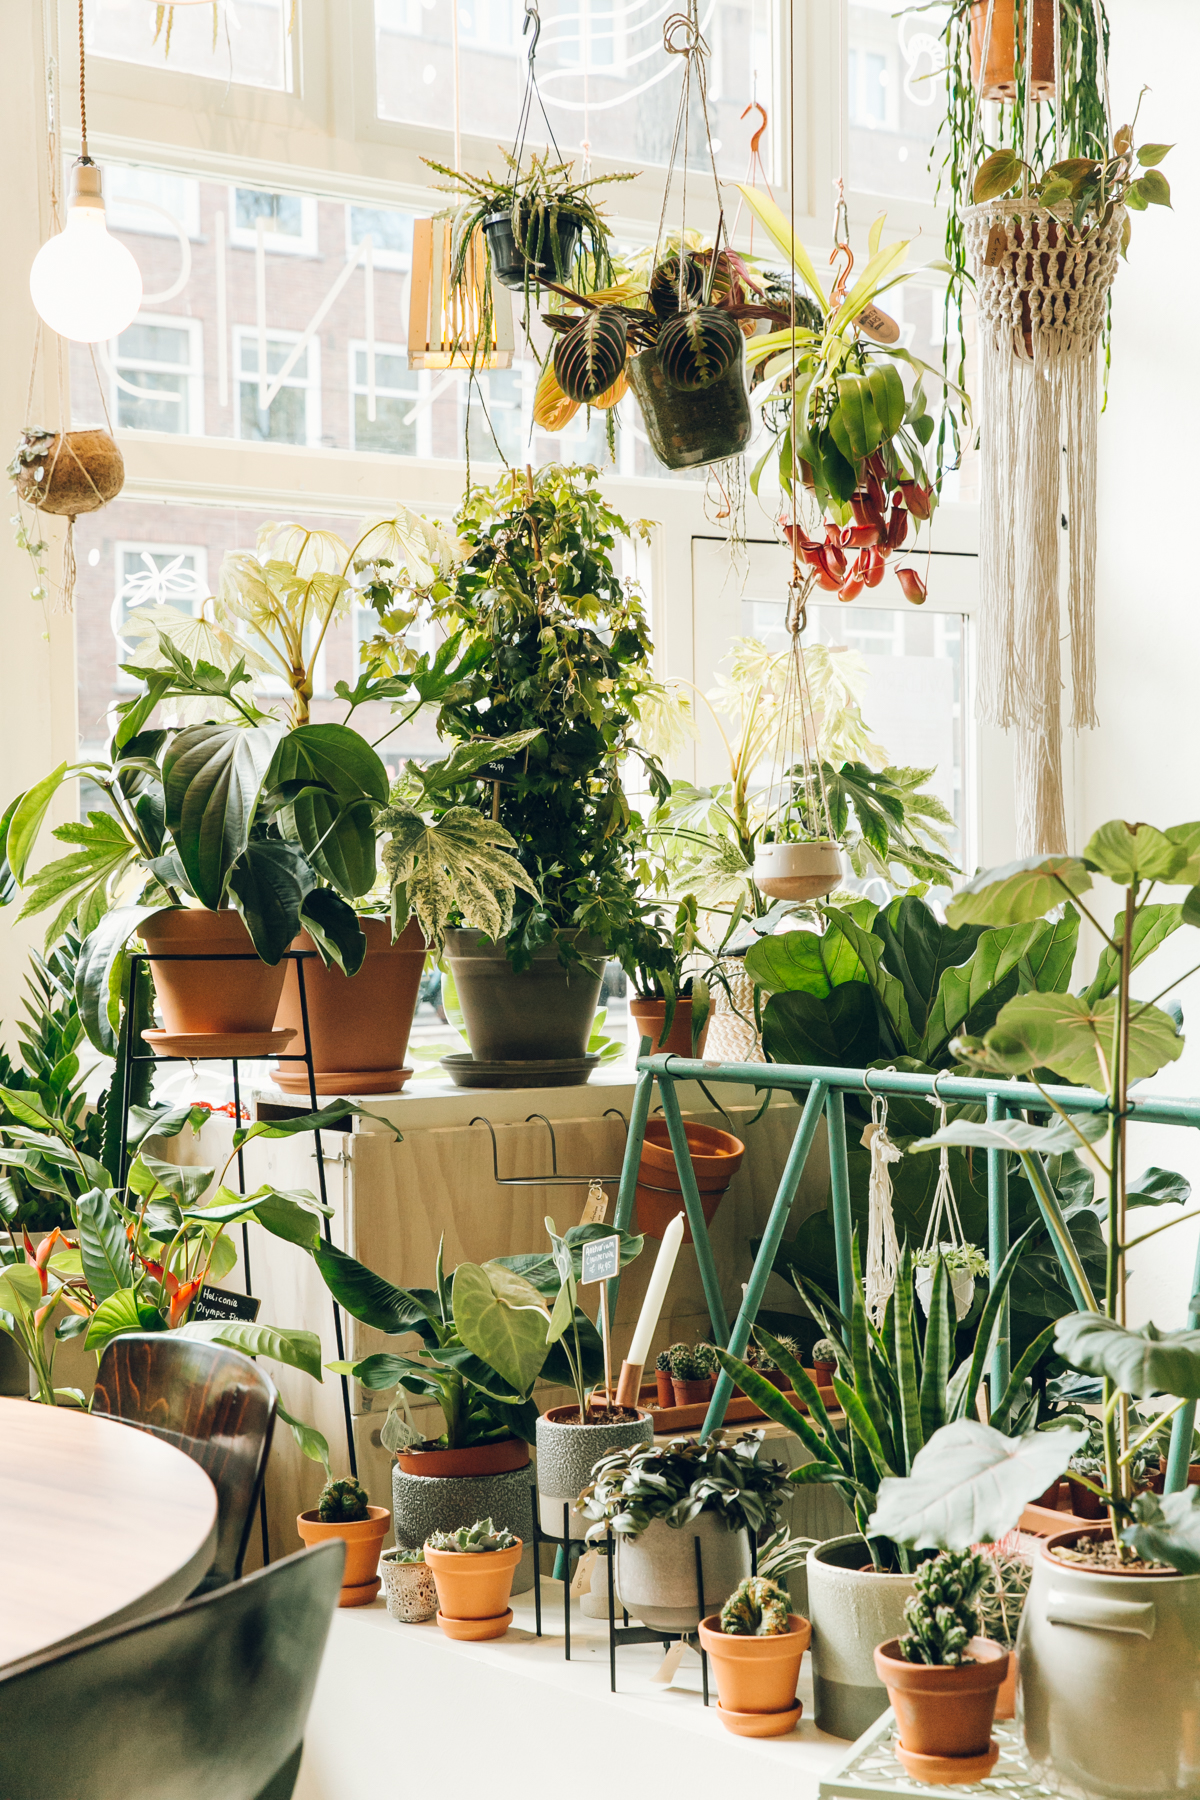 A plant shop called Wildernis in Amsterdam.